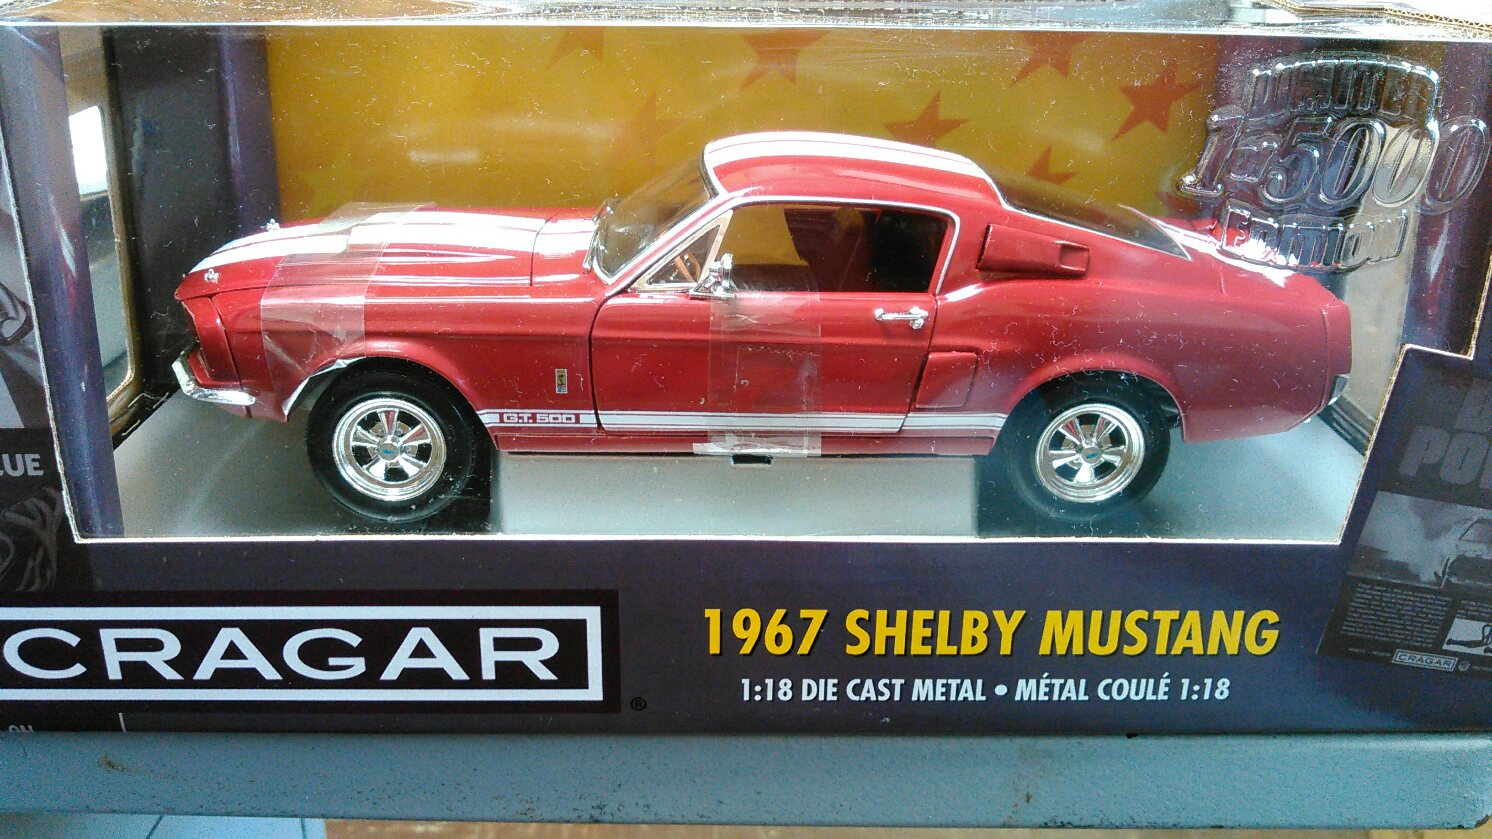 1967 ford shelby mustang cragar